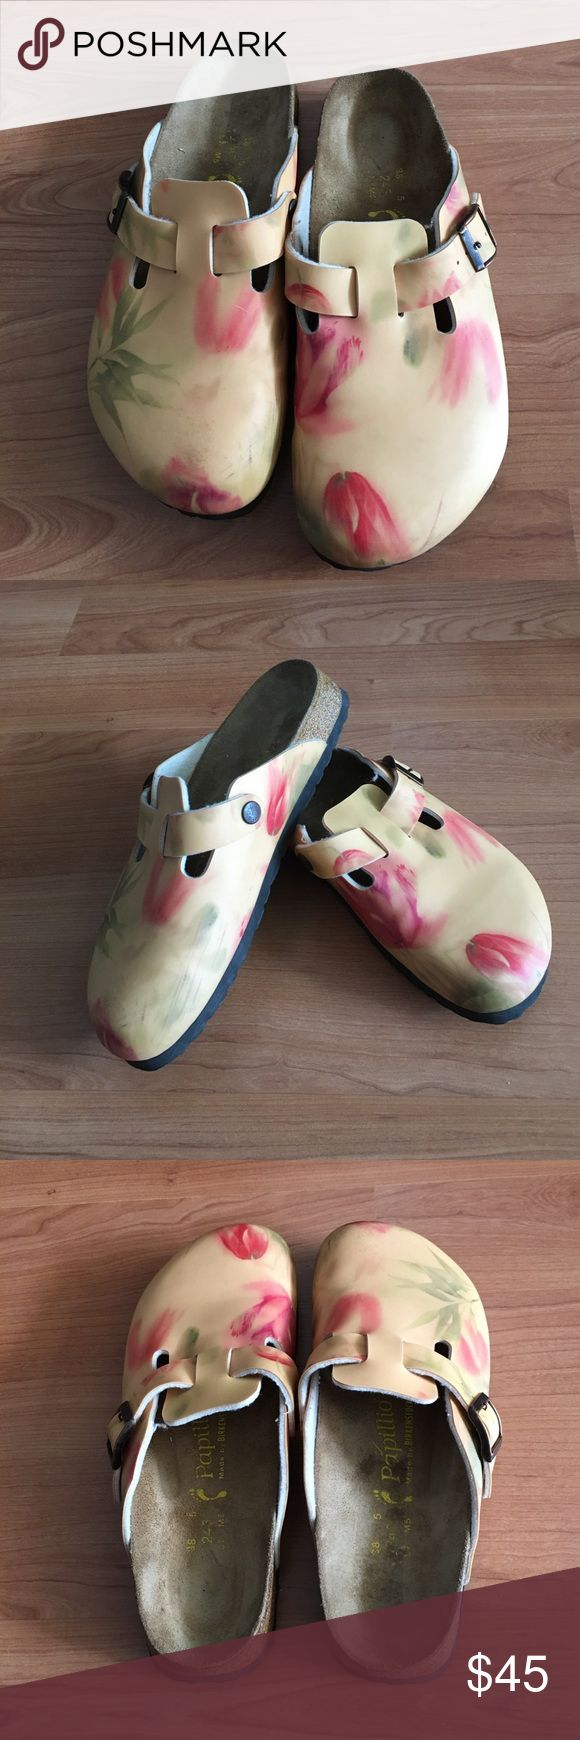 PAPILLIO Birkenstock mules watercolor floral Great PAPILLIO mules! Watercolor floral and leaves. Size 38. Please see photo of footbed to confirm size and width. Barely any wear on shoe or sole. In great condition! Thank you. Birkenstock Shoes Mules & Clogs